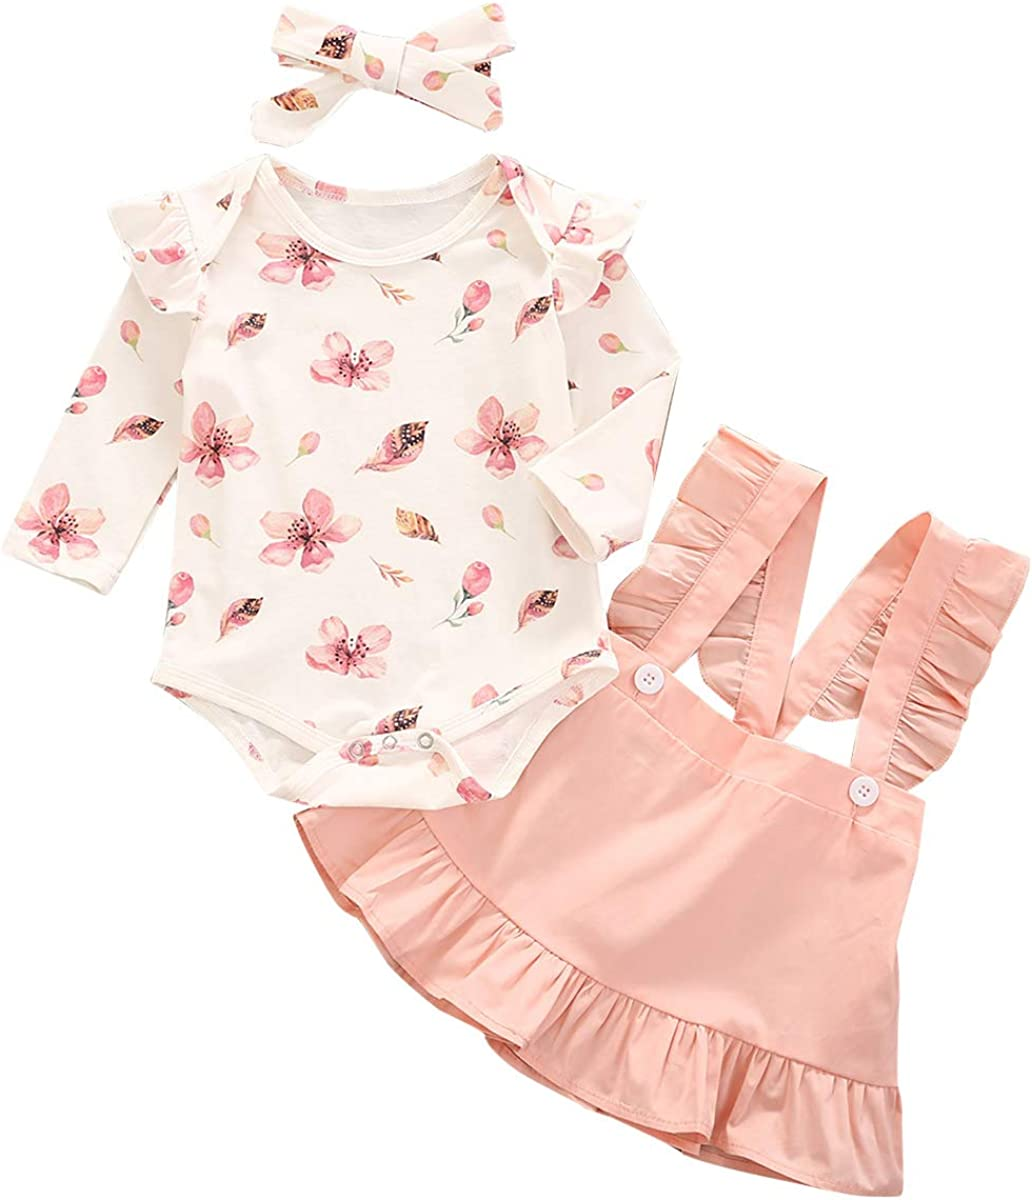 Infant Baby Girls Short Long Sleeve Sleeveless Floral Dress Toddler Kids Skirt Summer Fall Solid Color Outfit